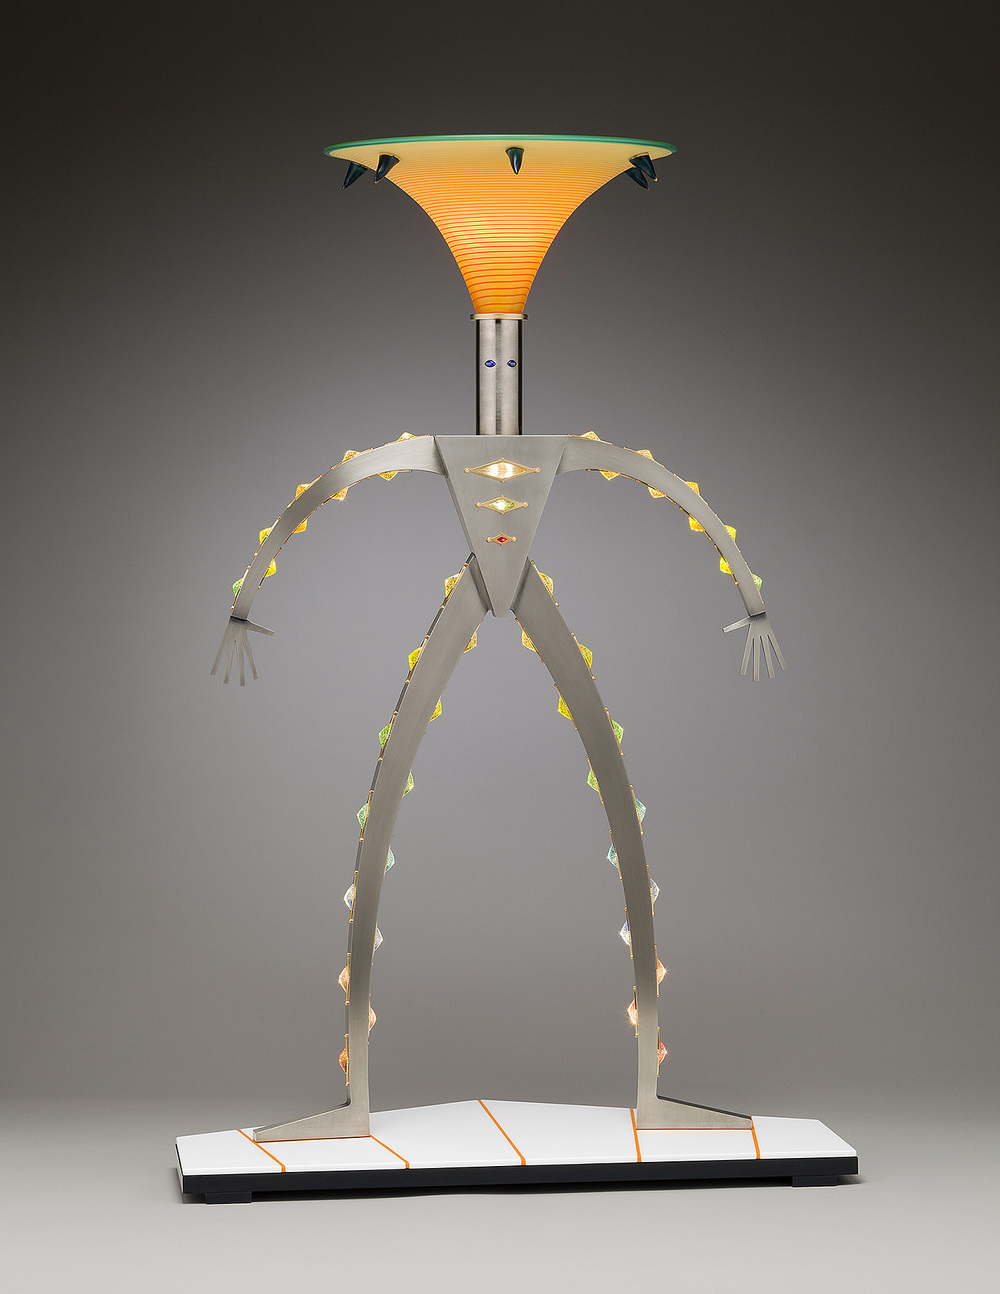 Suit of Light   2011. Blown glass, nickel-plated and anodized aluminum, gold plated brass, 50 LED lights, pate de verre and Vitrolite glass. 48 x 36 x 17""